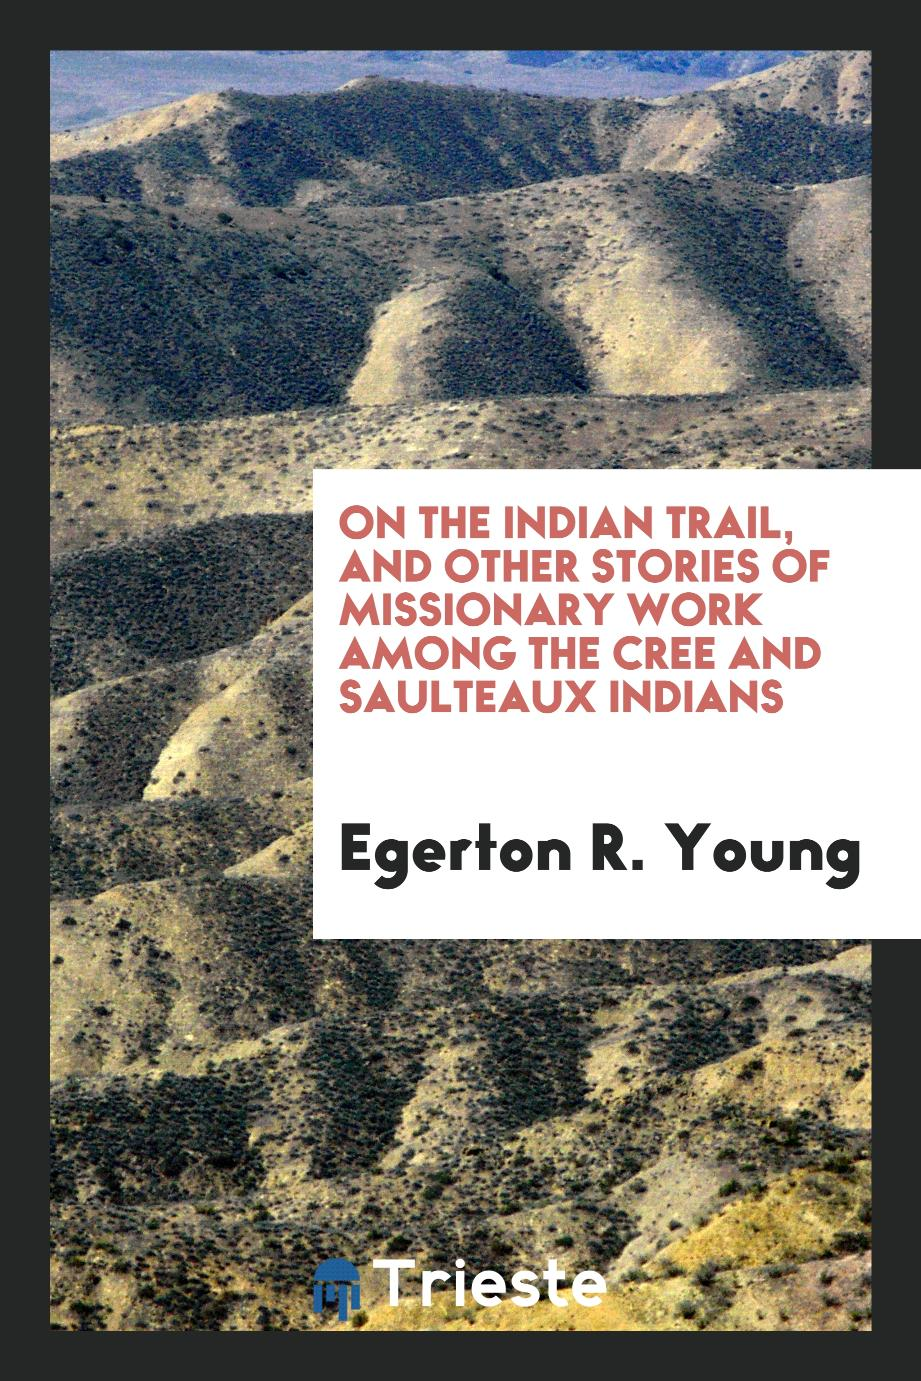 On the Indian trail, and other stories of missionary work among the Cree and Saulteaux Indians